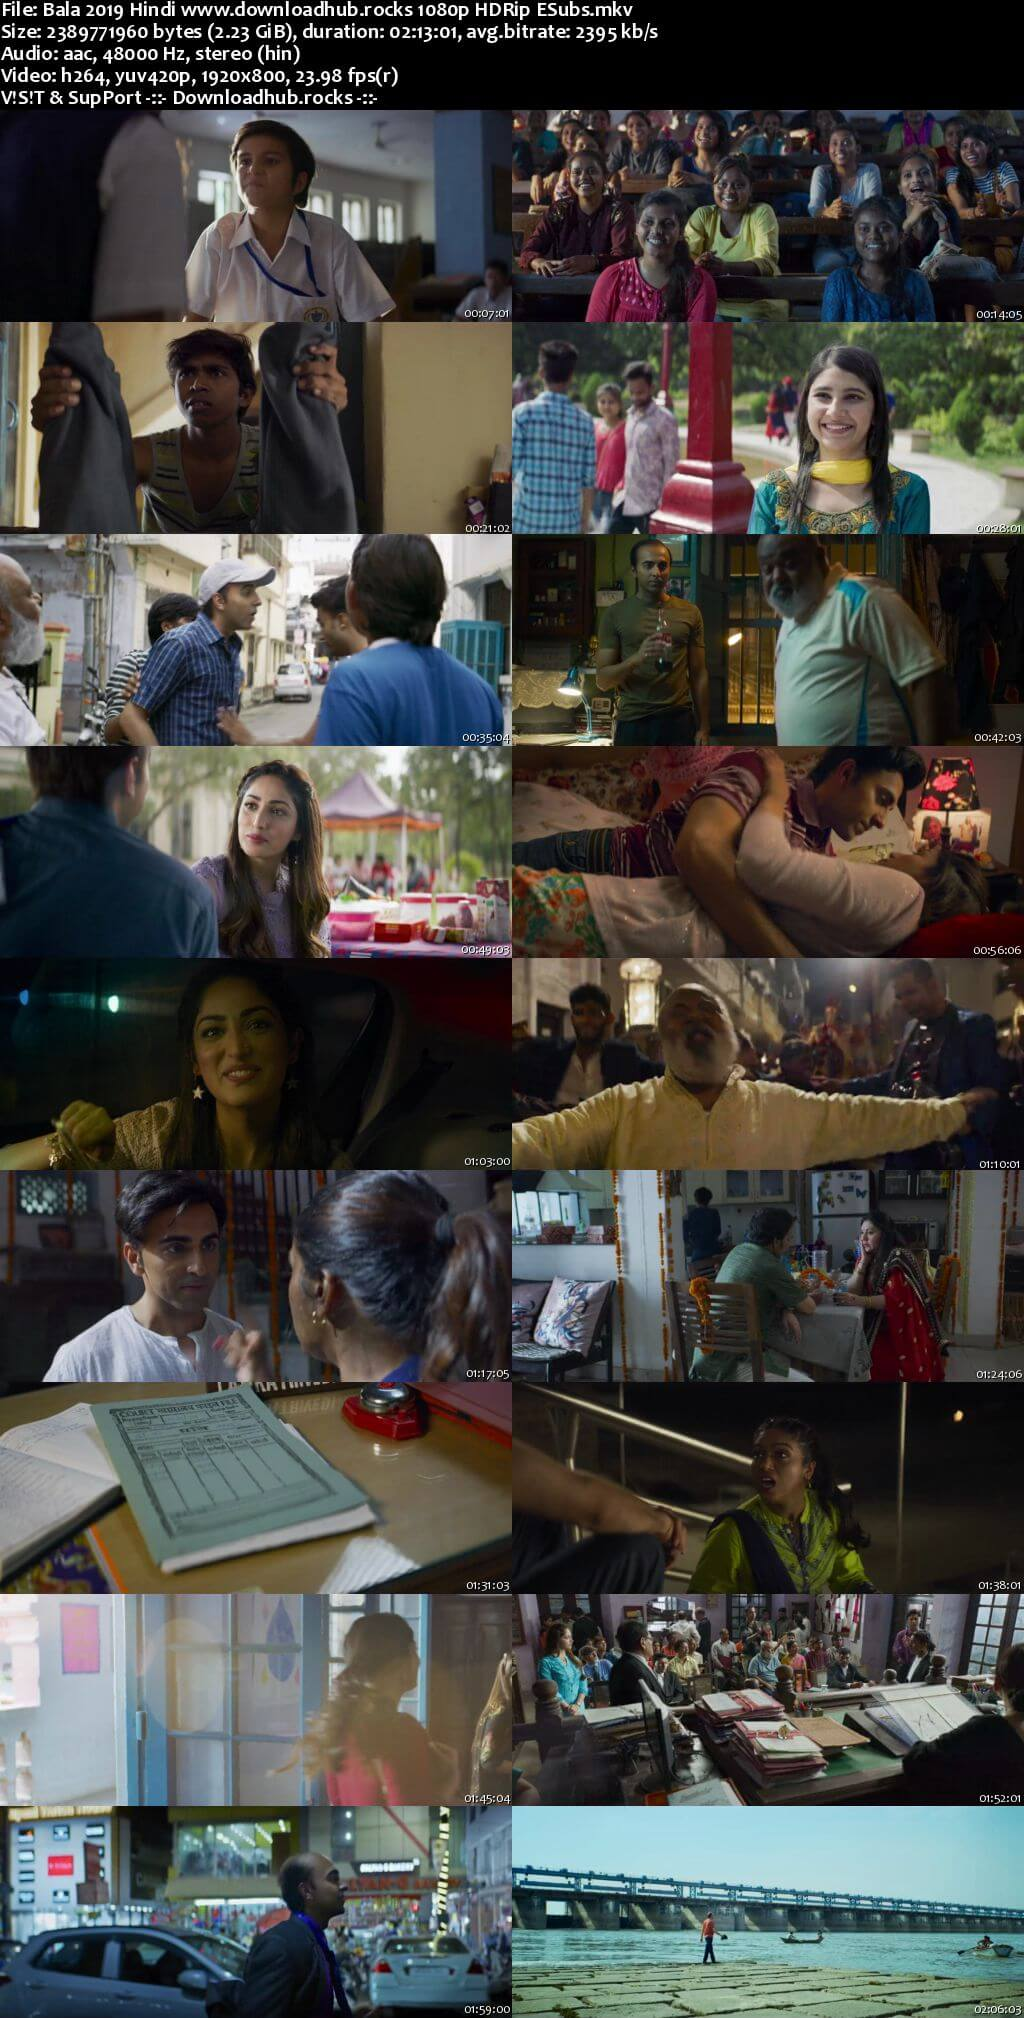 Bala 2019 Hindi 1080p HDRip ESubs